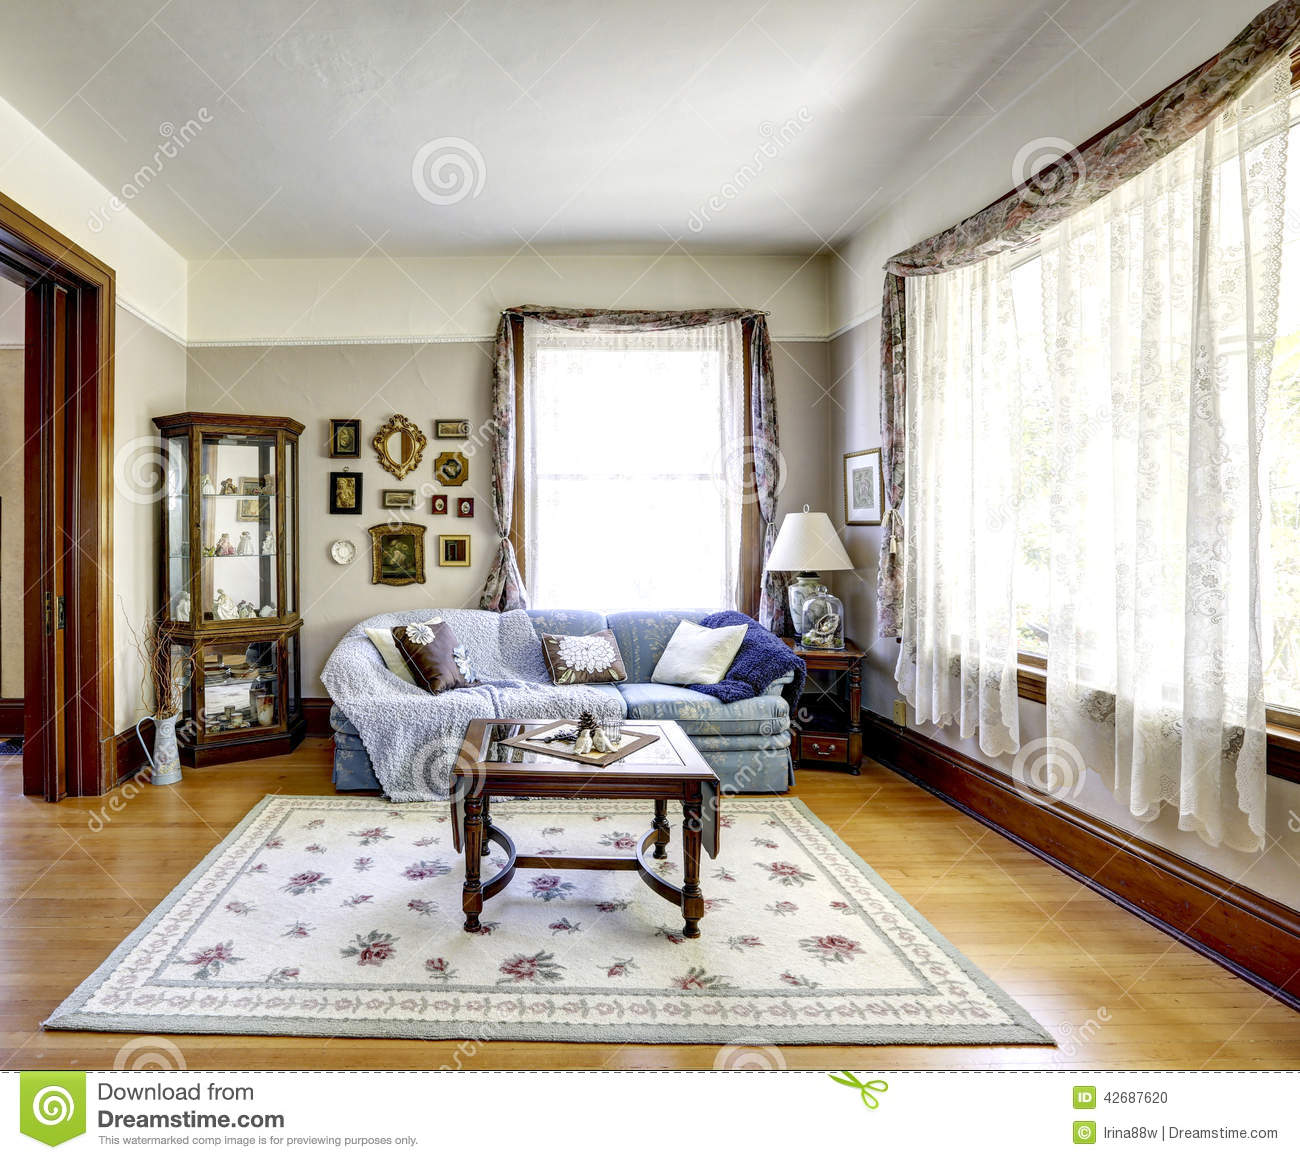 Living Room Interior In Old American House Stock Photo - Image of ...